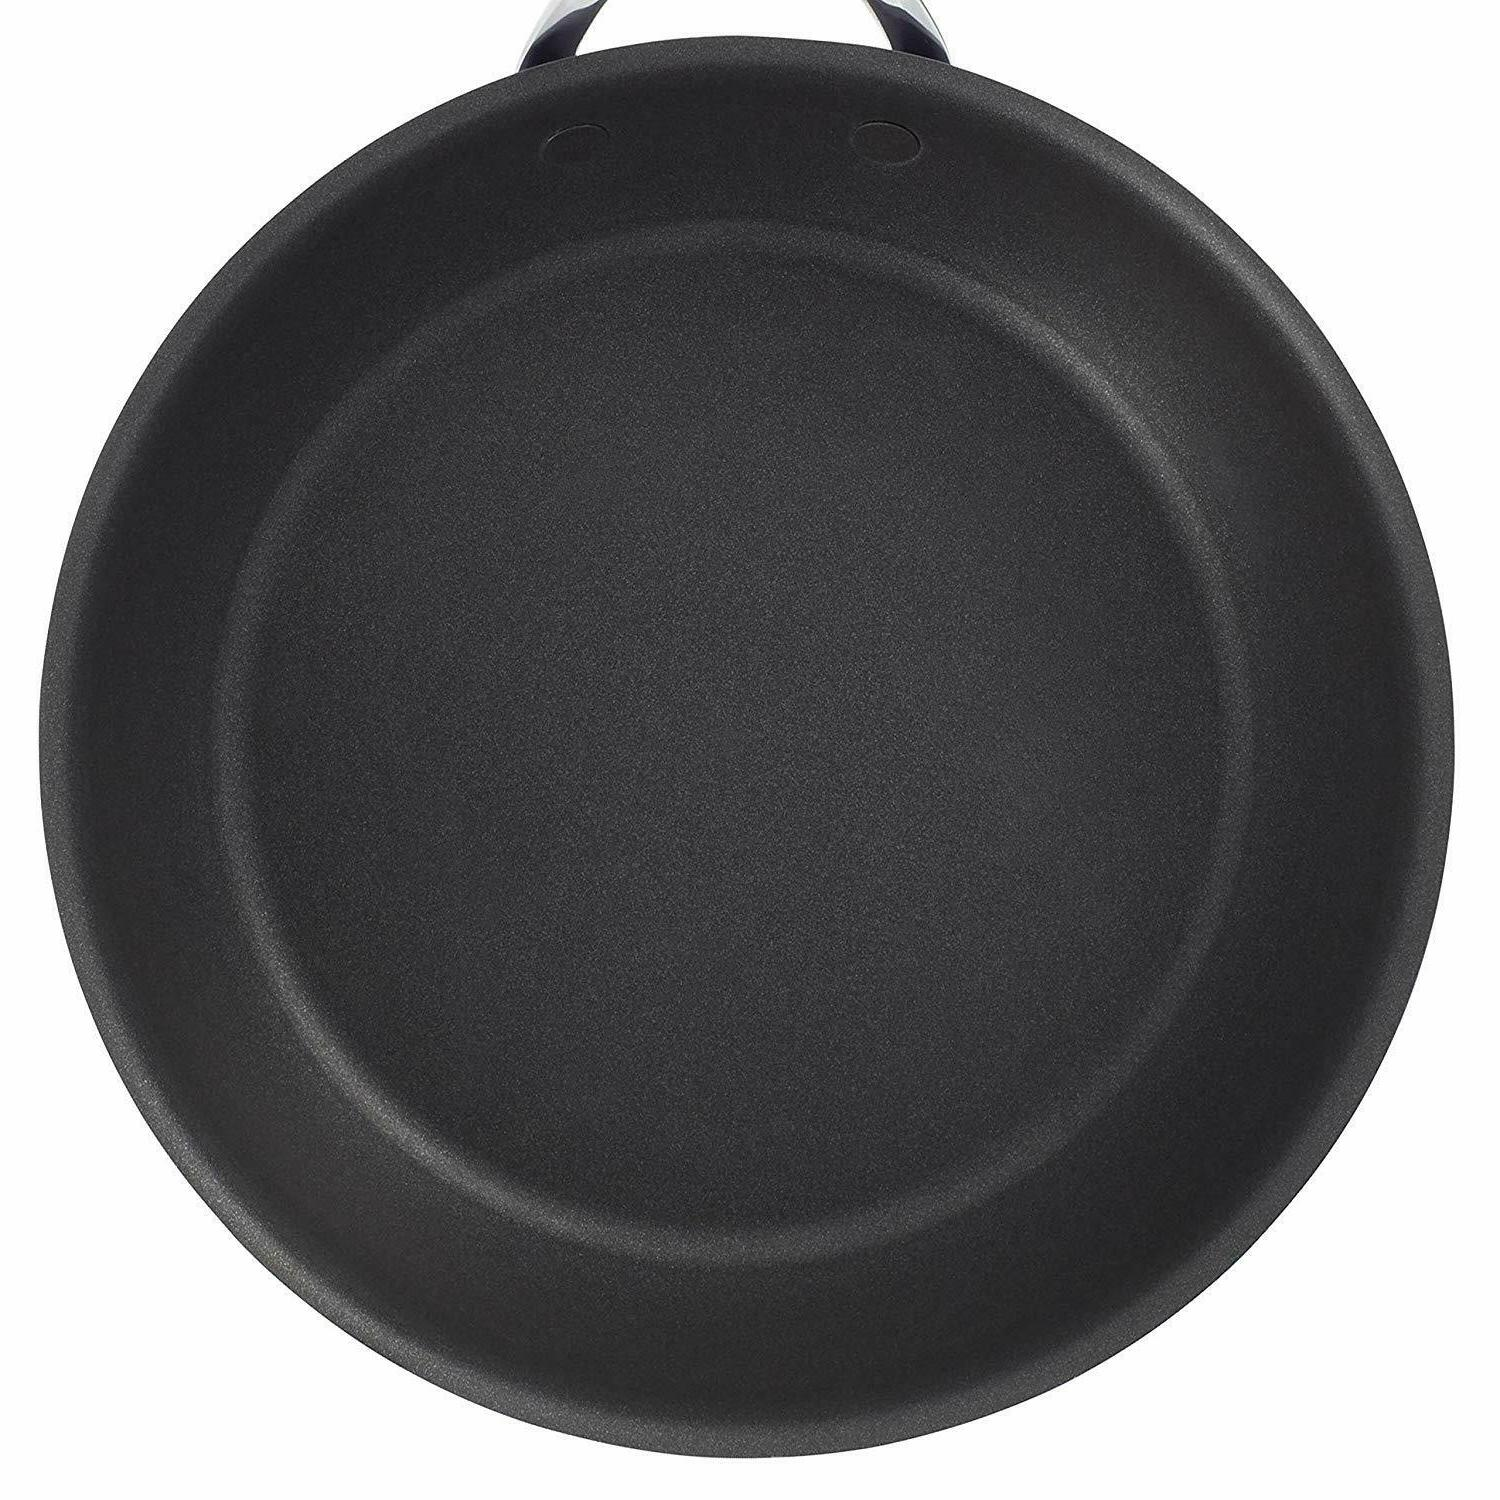 Anolon Copper Nonstick Cookware Dark Gray